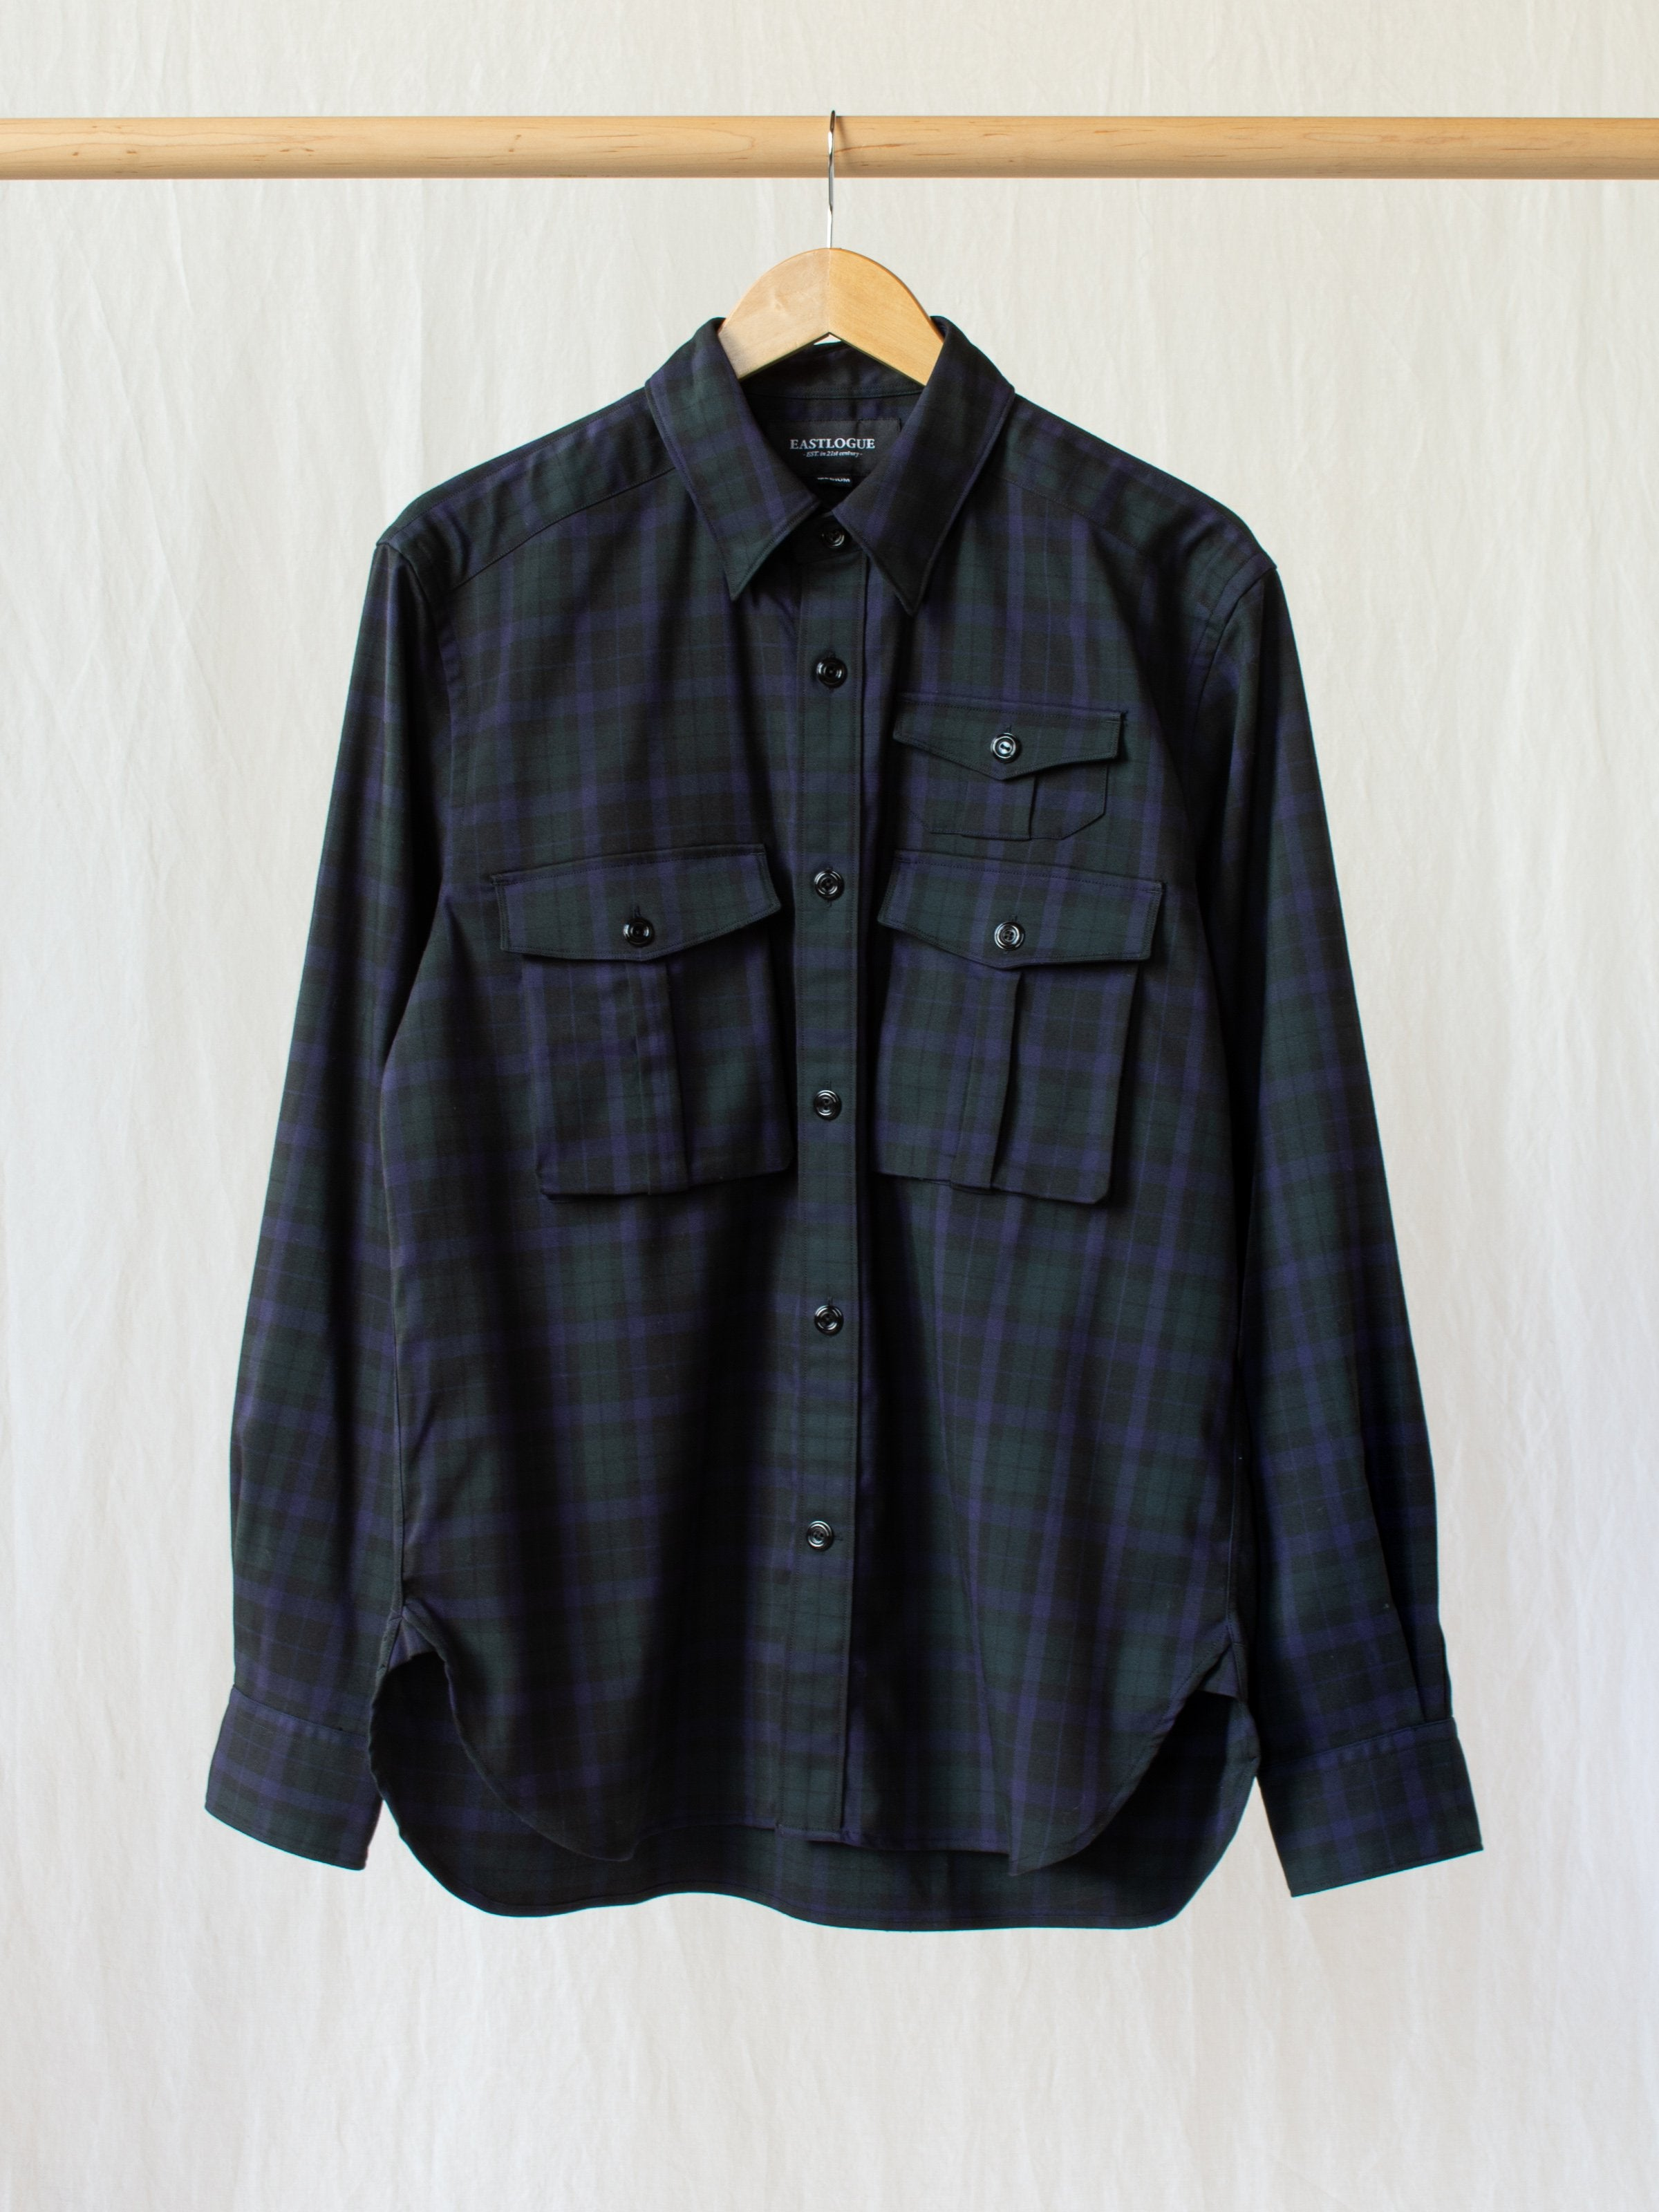 Namu Shop - Eastlogue Boyscout Shirt - Black Watch Twill